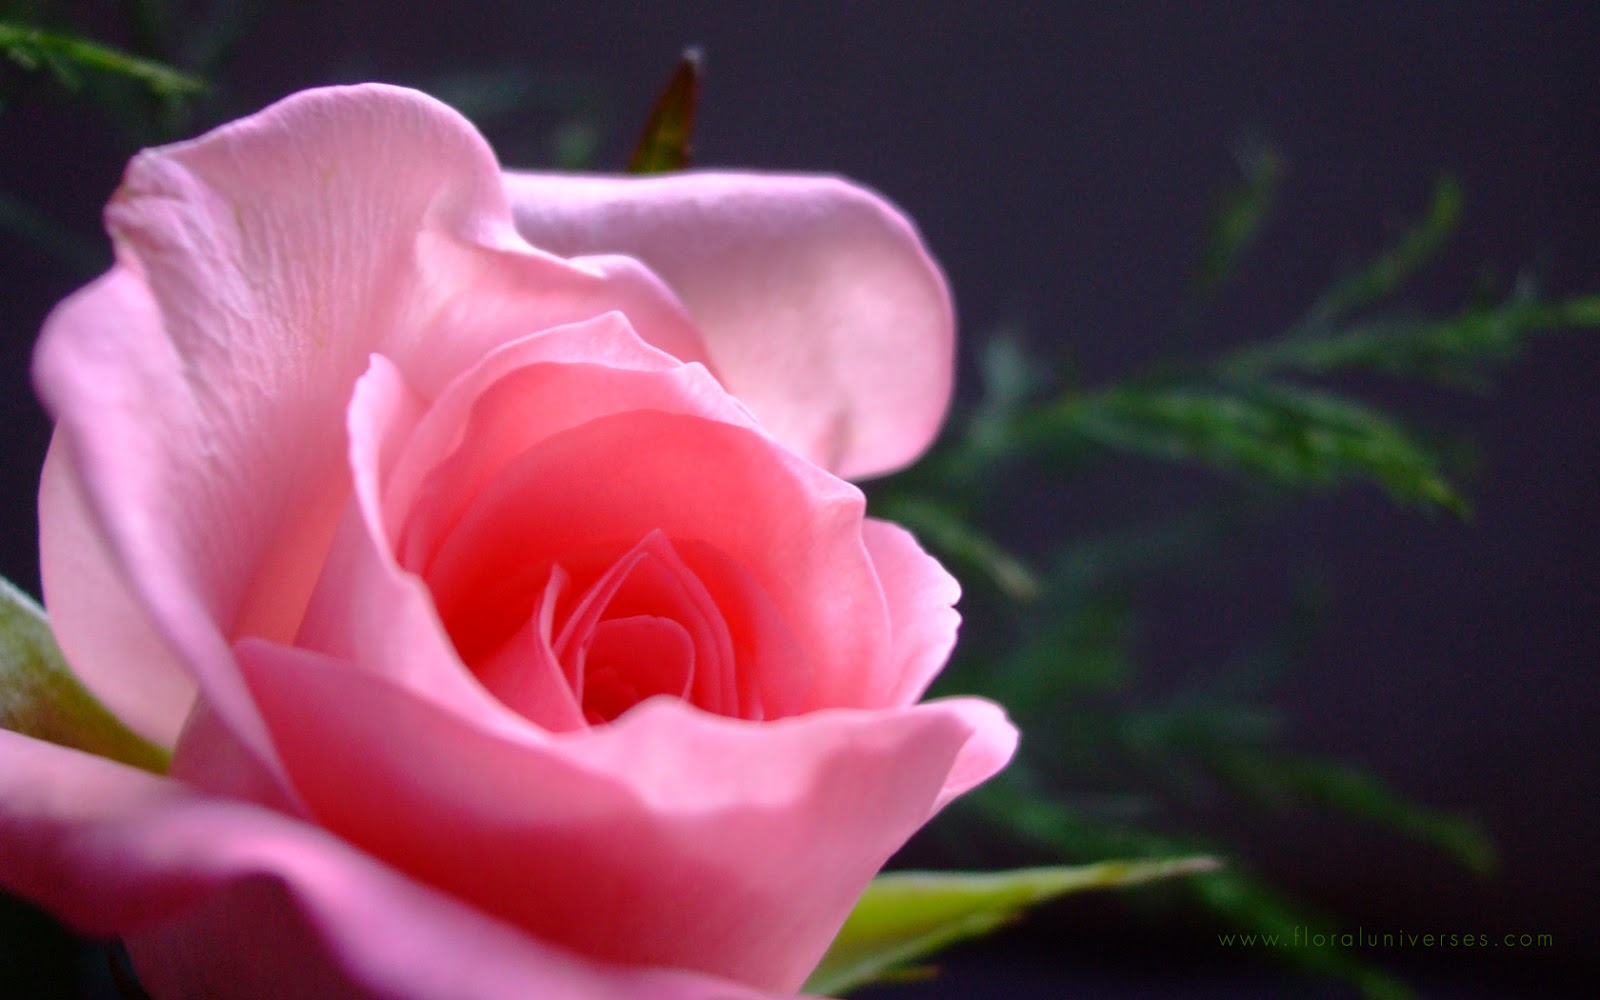 Free desktop wallpaper pink roses wallpapersafari - Pink rose black background wallpaper ...